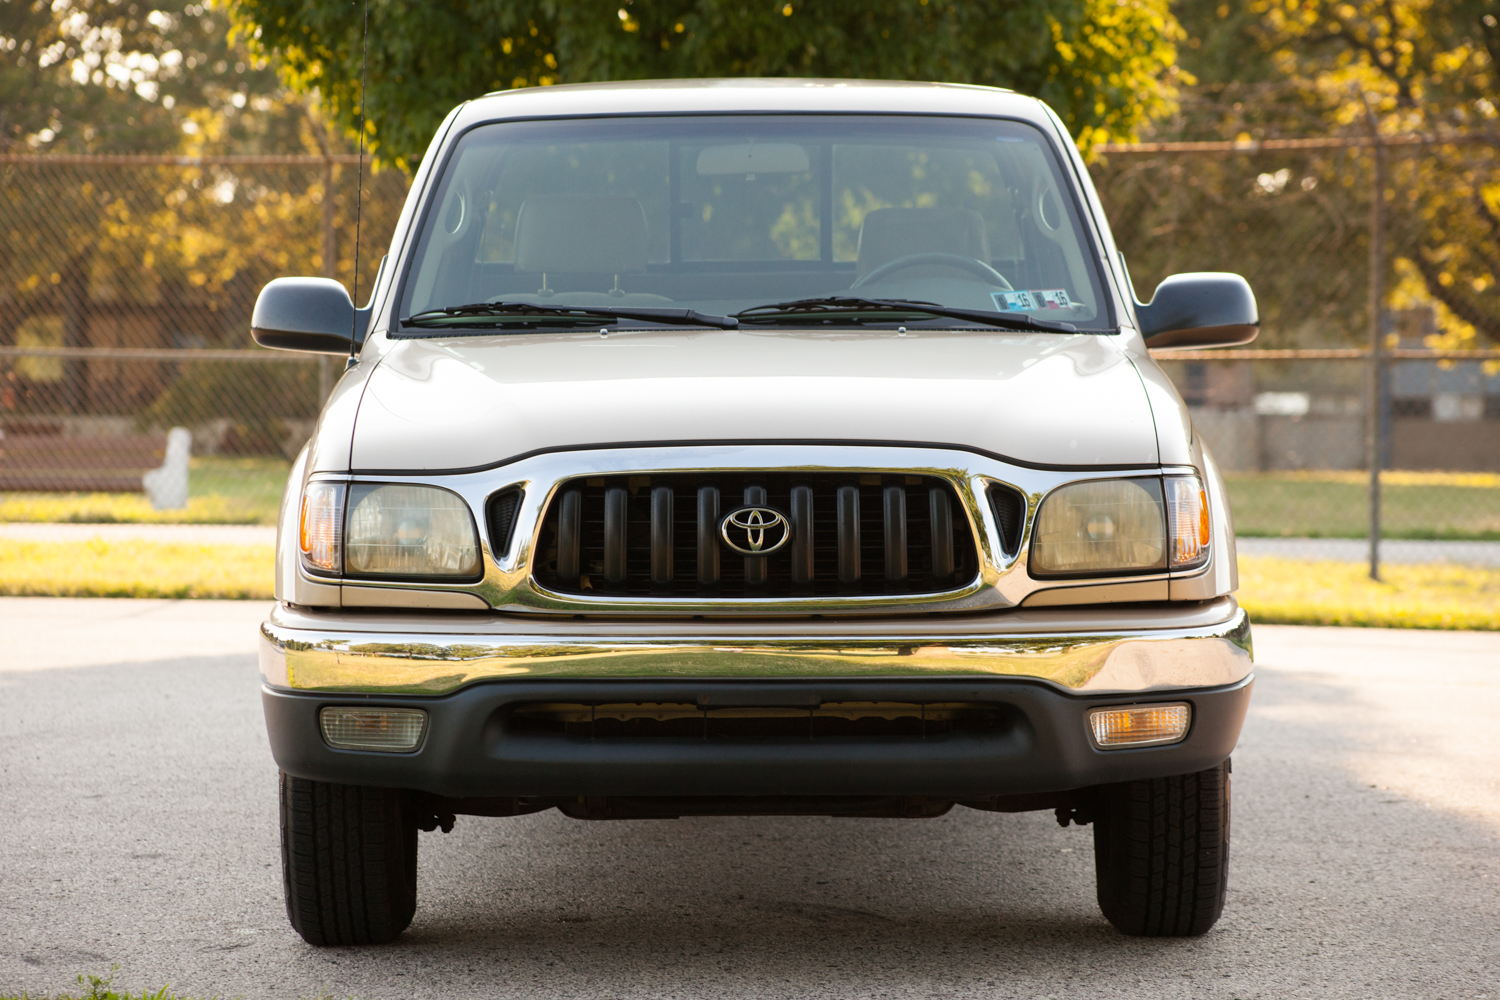 2004 toyota tacoma maintenance schedule autos post for Tacoma honda service